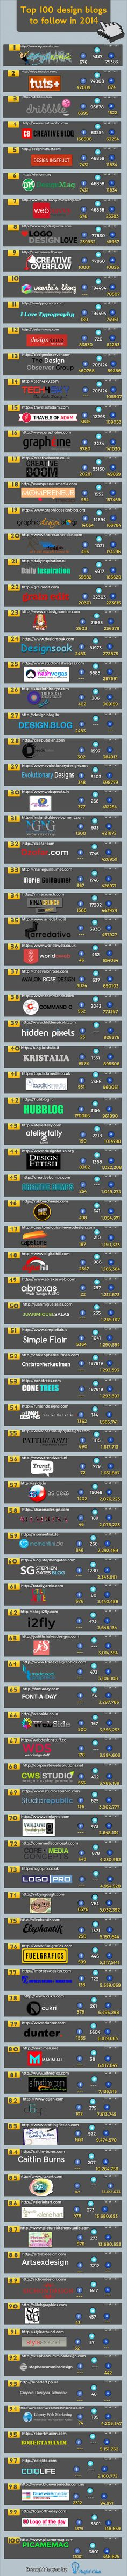 Top 100 Design Blogs To Follow In 2014 Infographic - Daily Inspiration